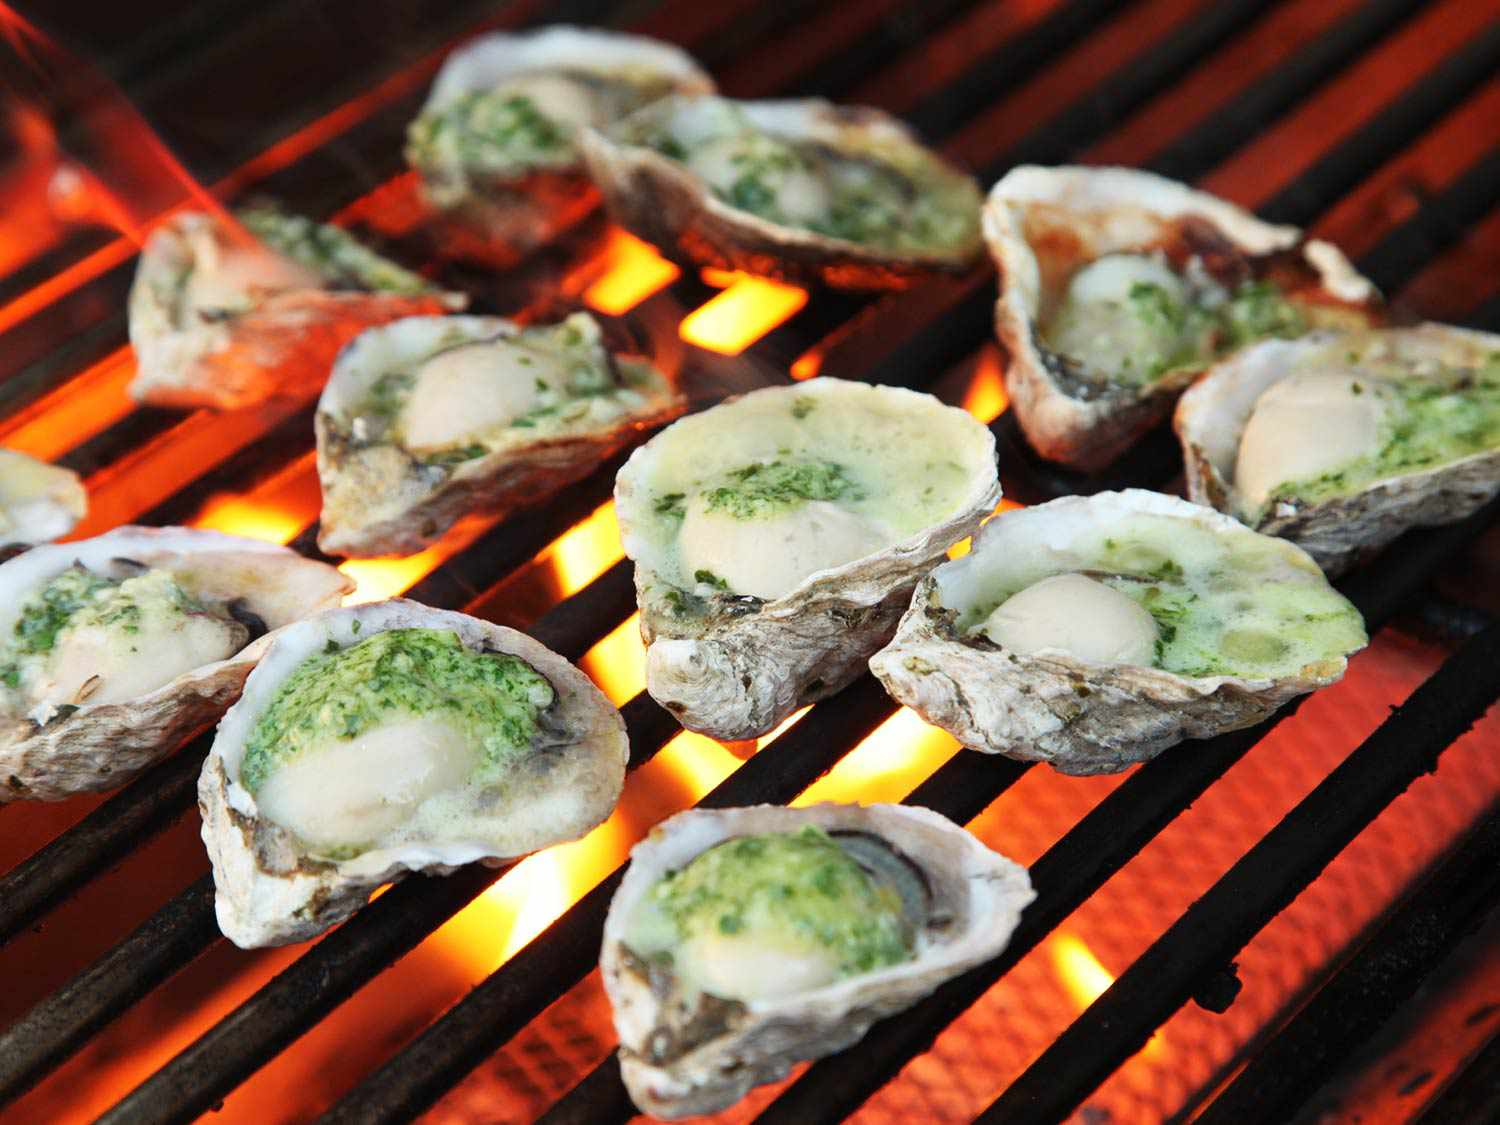 20160801-grilled-oysters-12.jpg